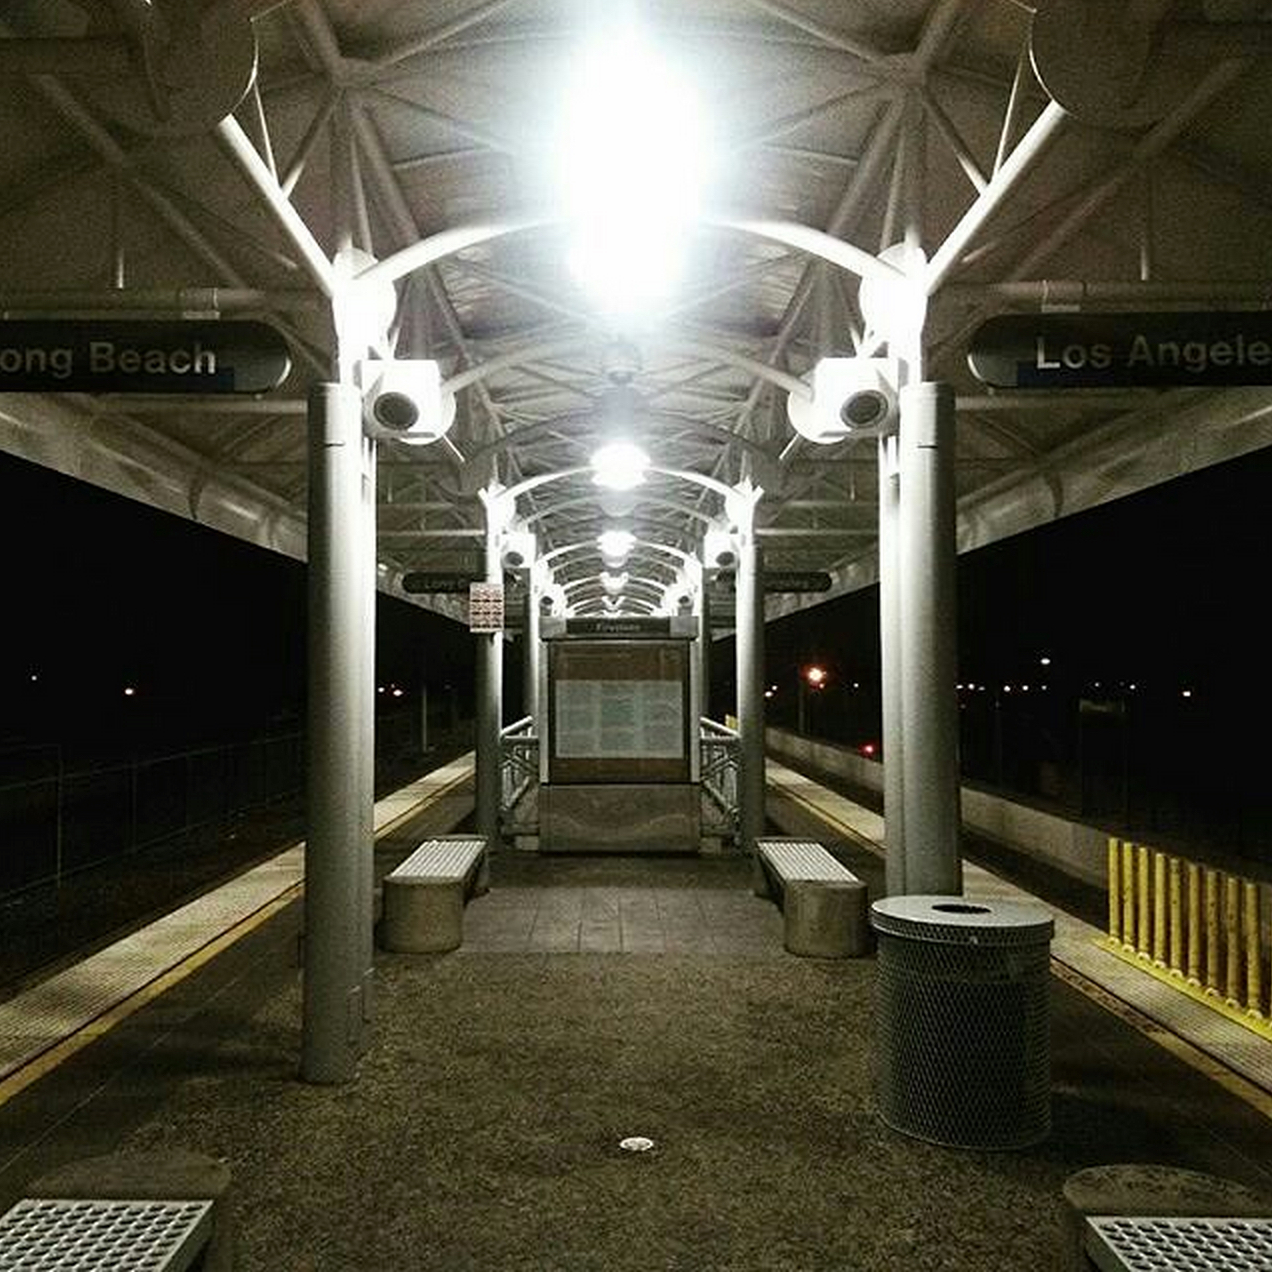 Upgraded Firestone Blue Line Station. Photo via Instagram @hour38